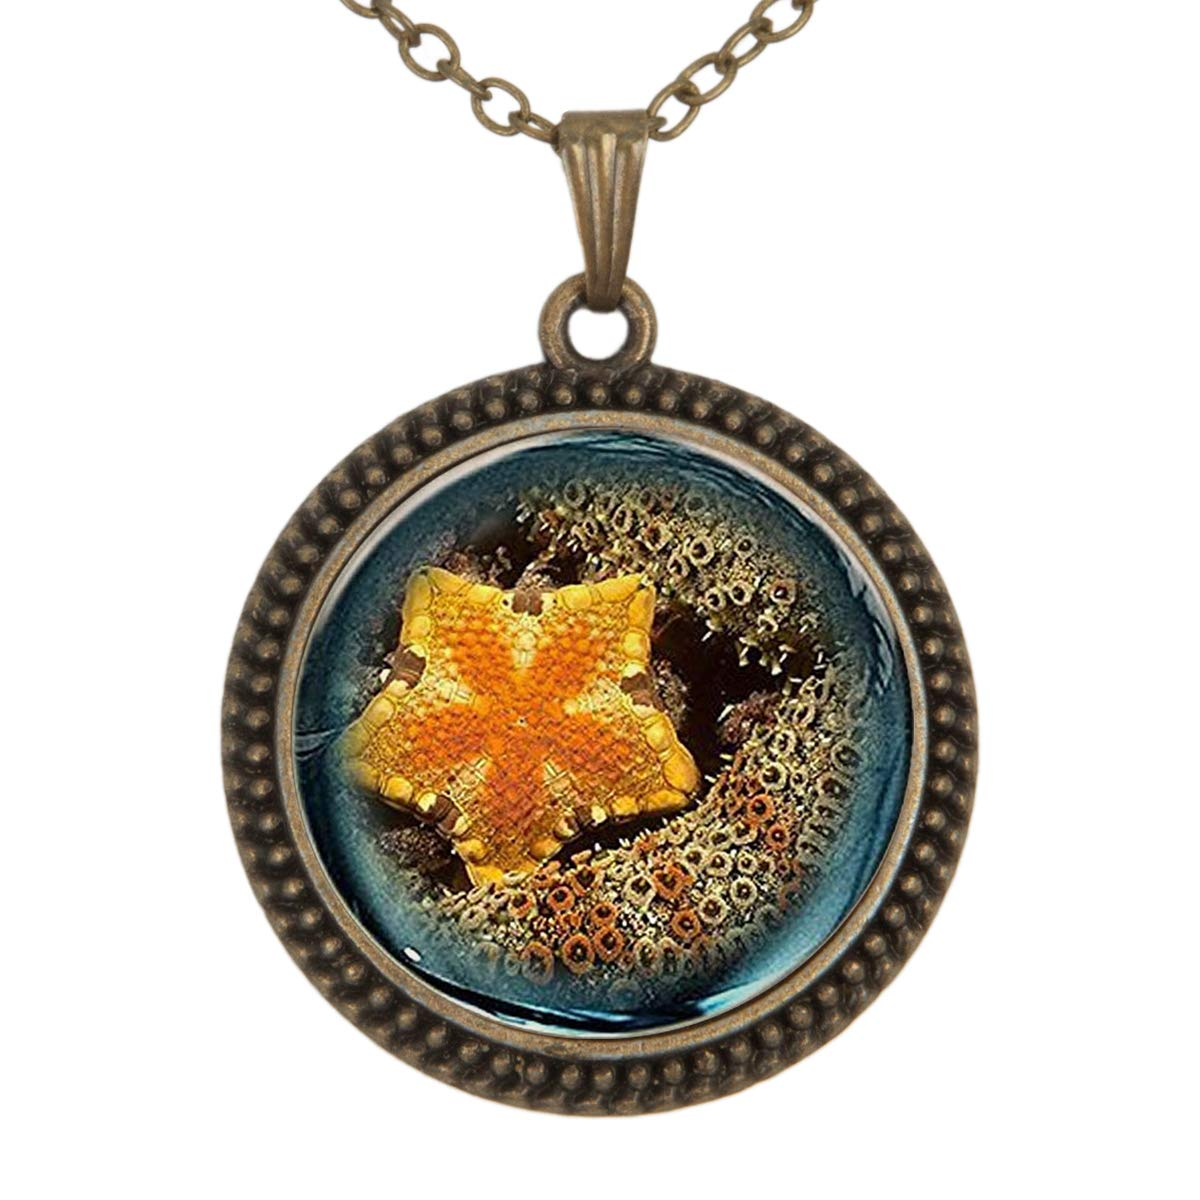 Lightrain Yellow Starfish Pendant Necklace Vintage Bronze Chain Statement Necklace Handmade Jewelry Gifts